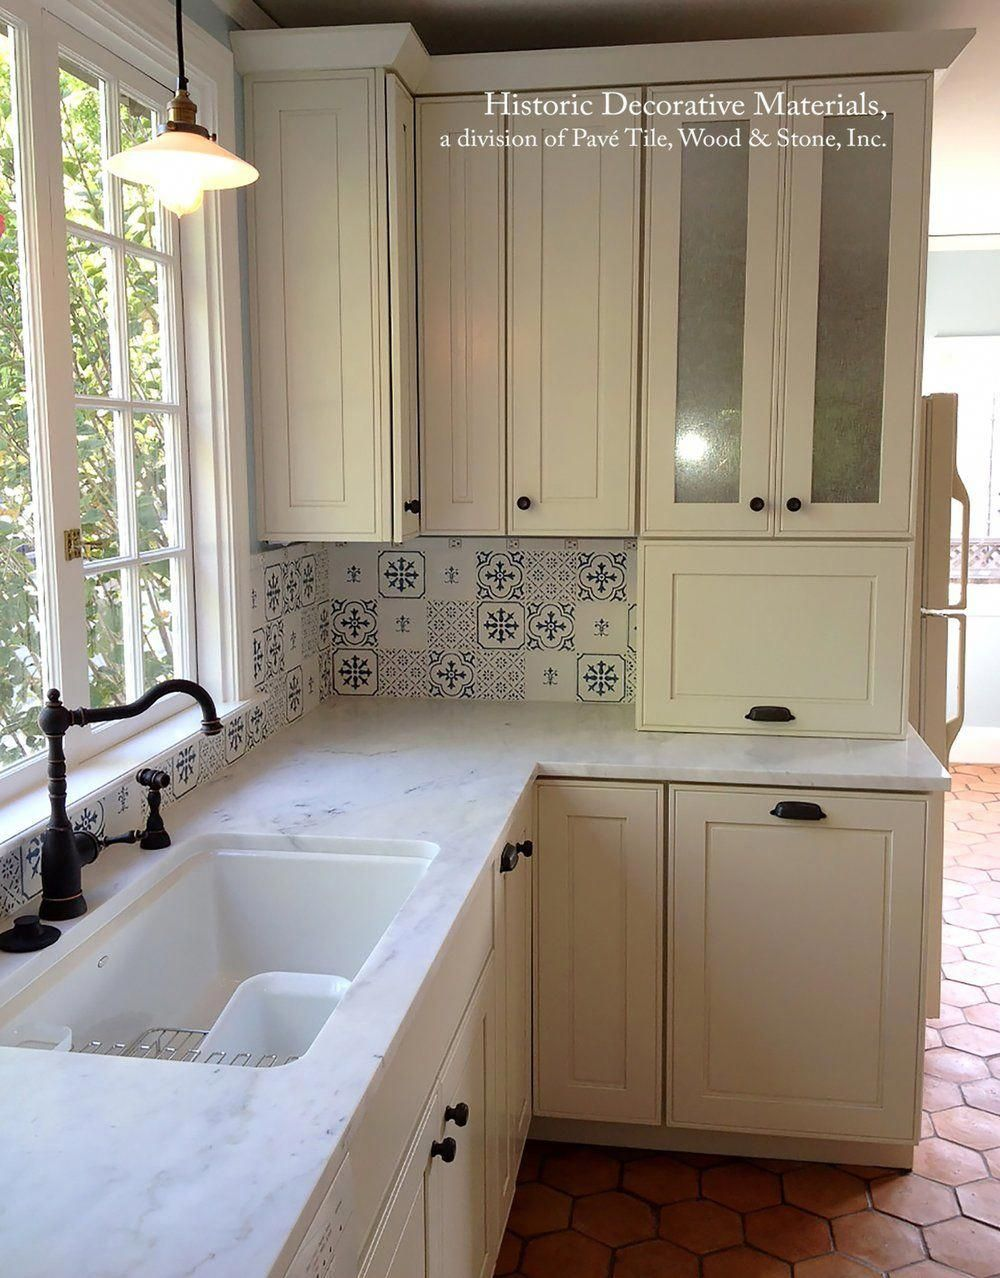 Blue and White Decorative Wall Tiles for Kitchens